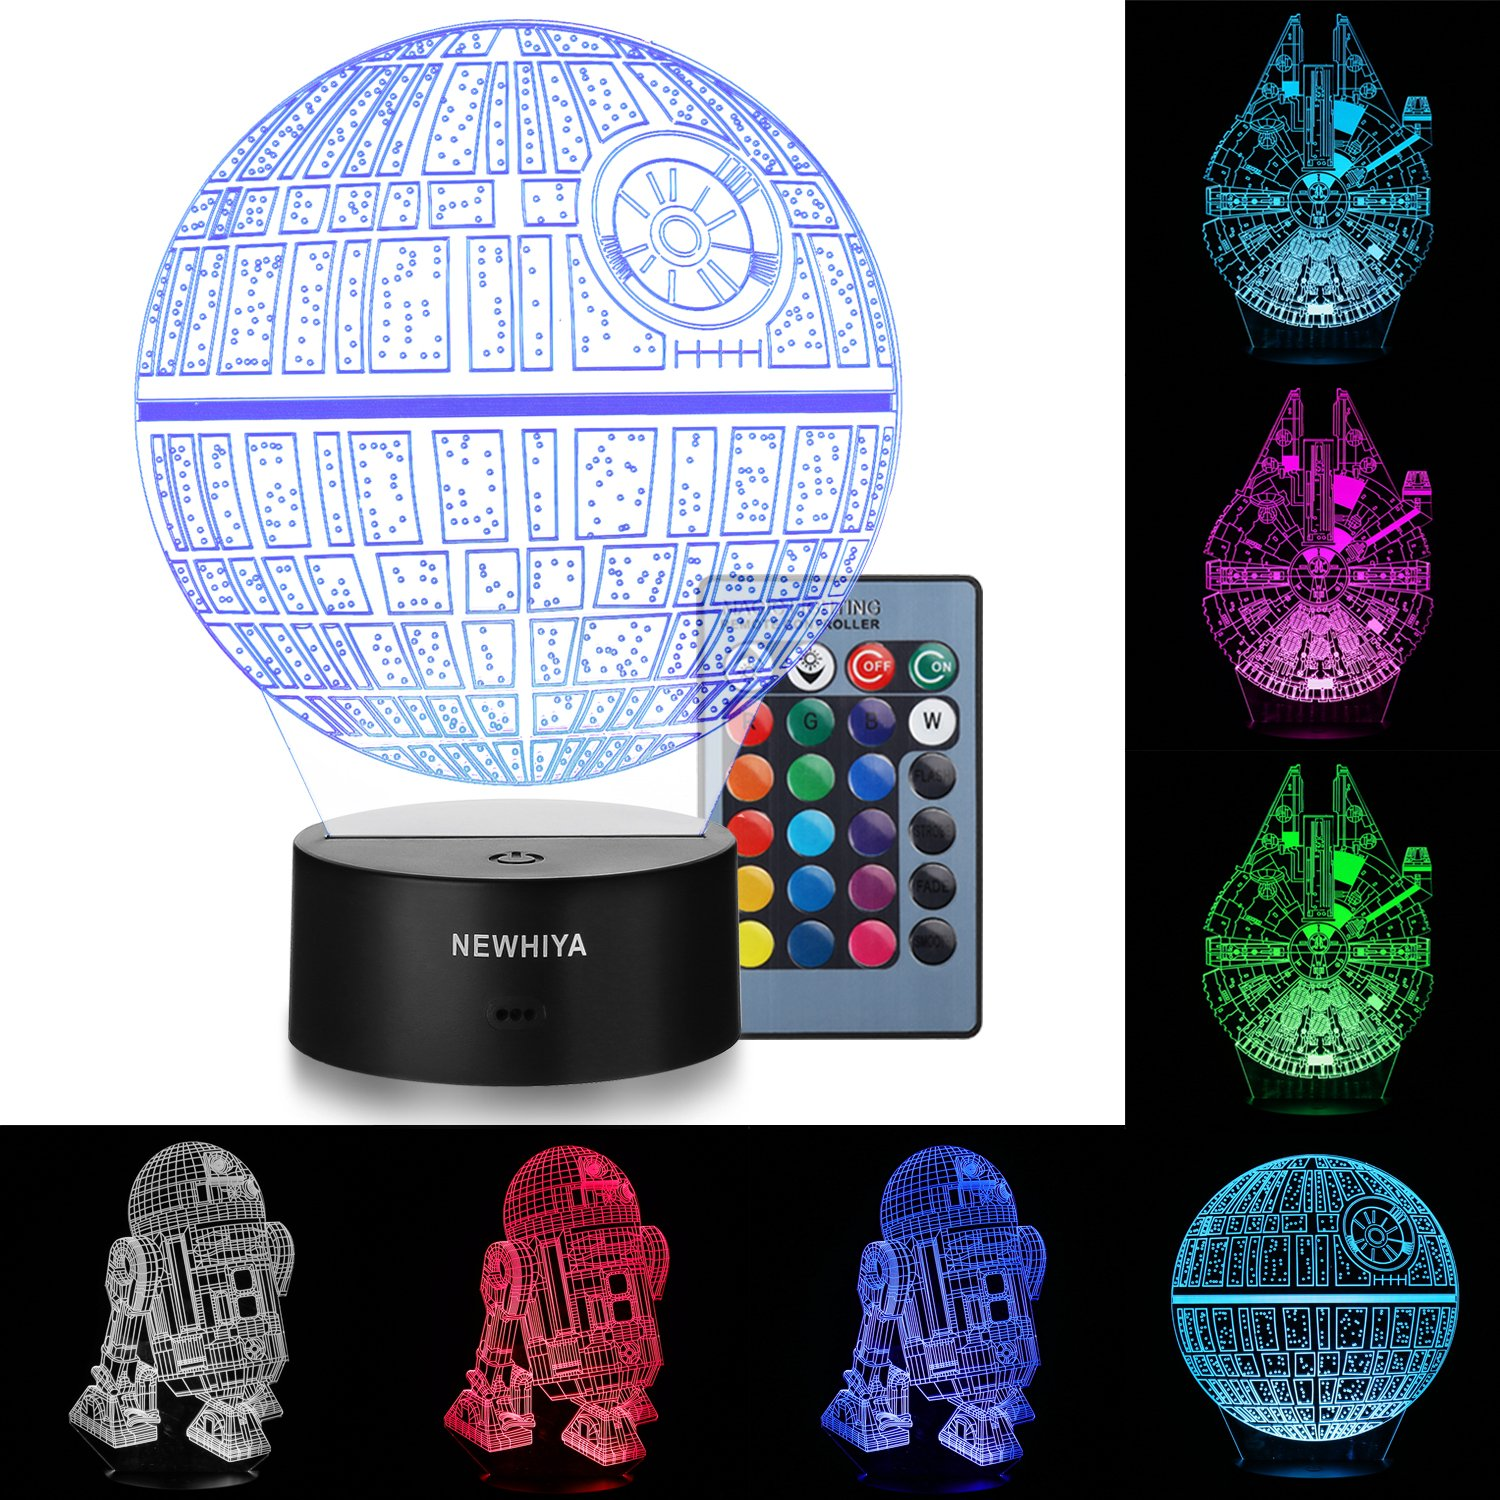 *HOT DEAL* Star Wars 3D Color Changing Illusion Lamp Only $19.99 (Was $79.99)